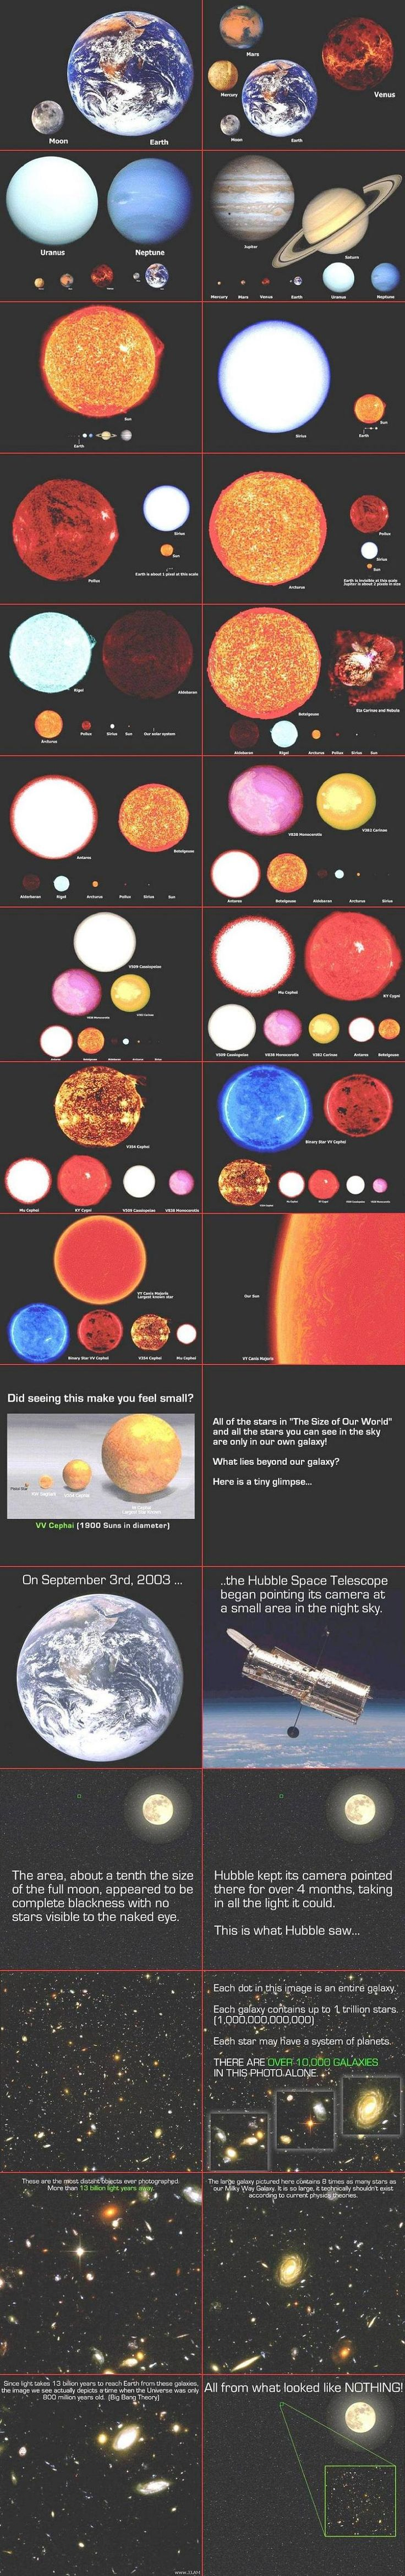 A lesson in scale.  We really are very small in the Universe.